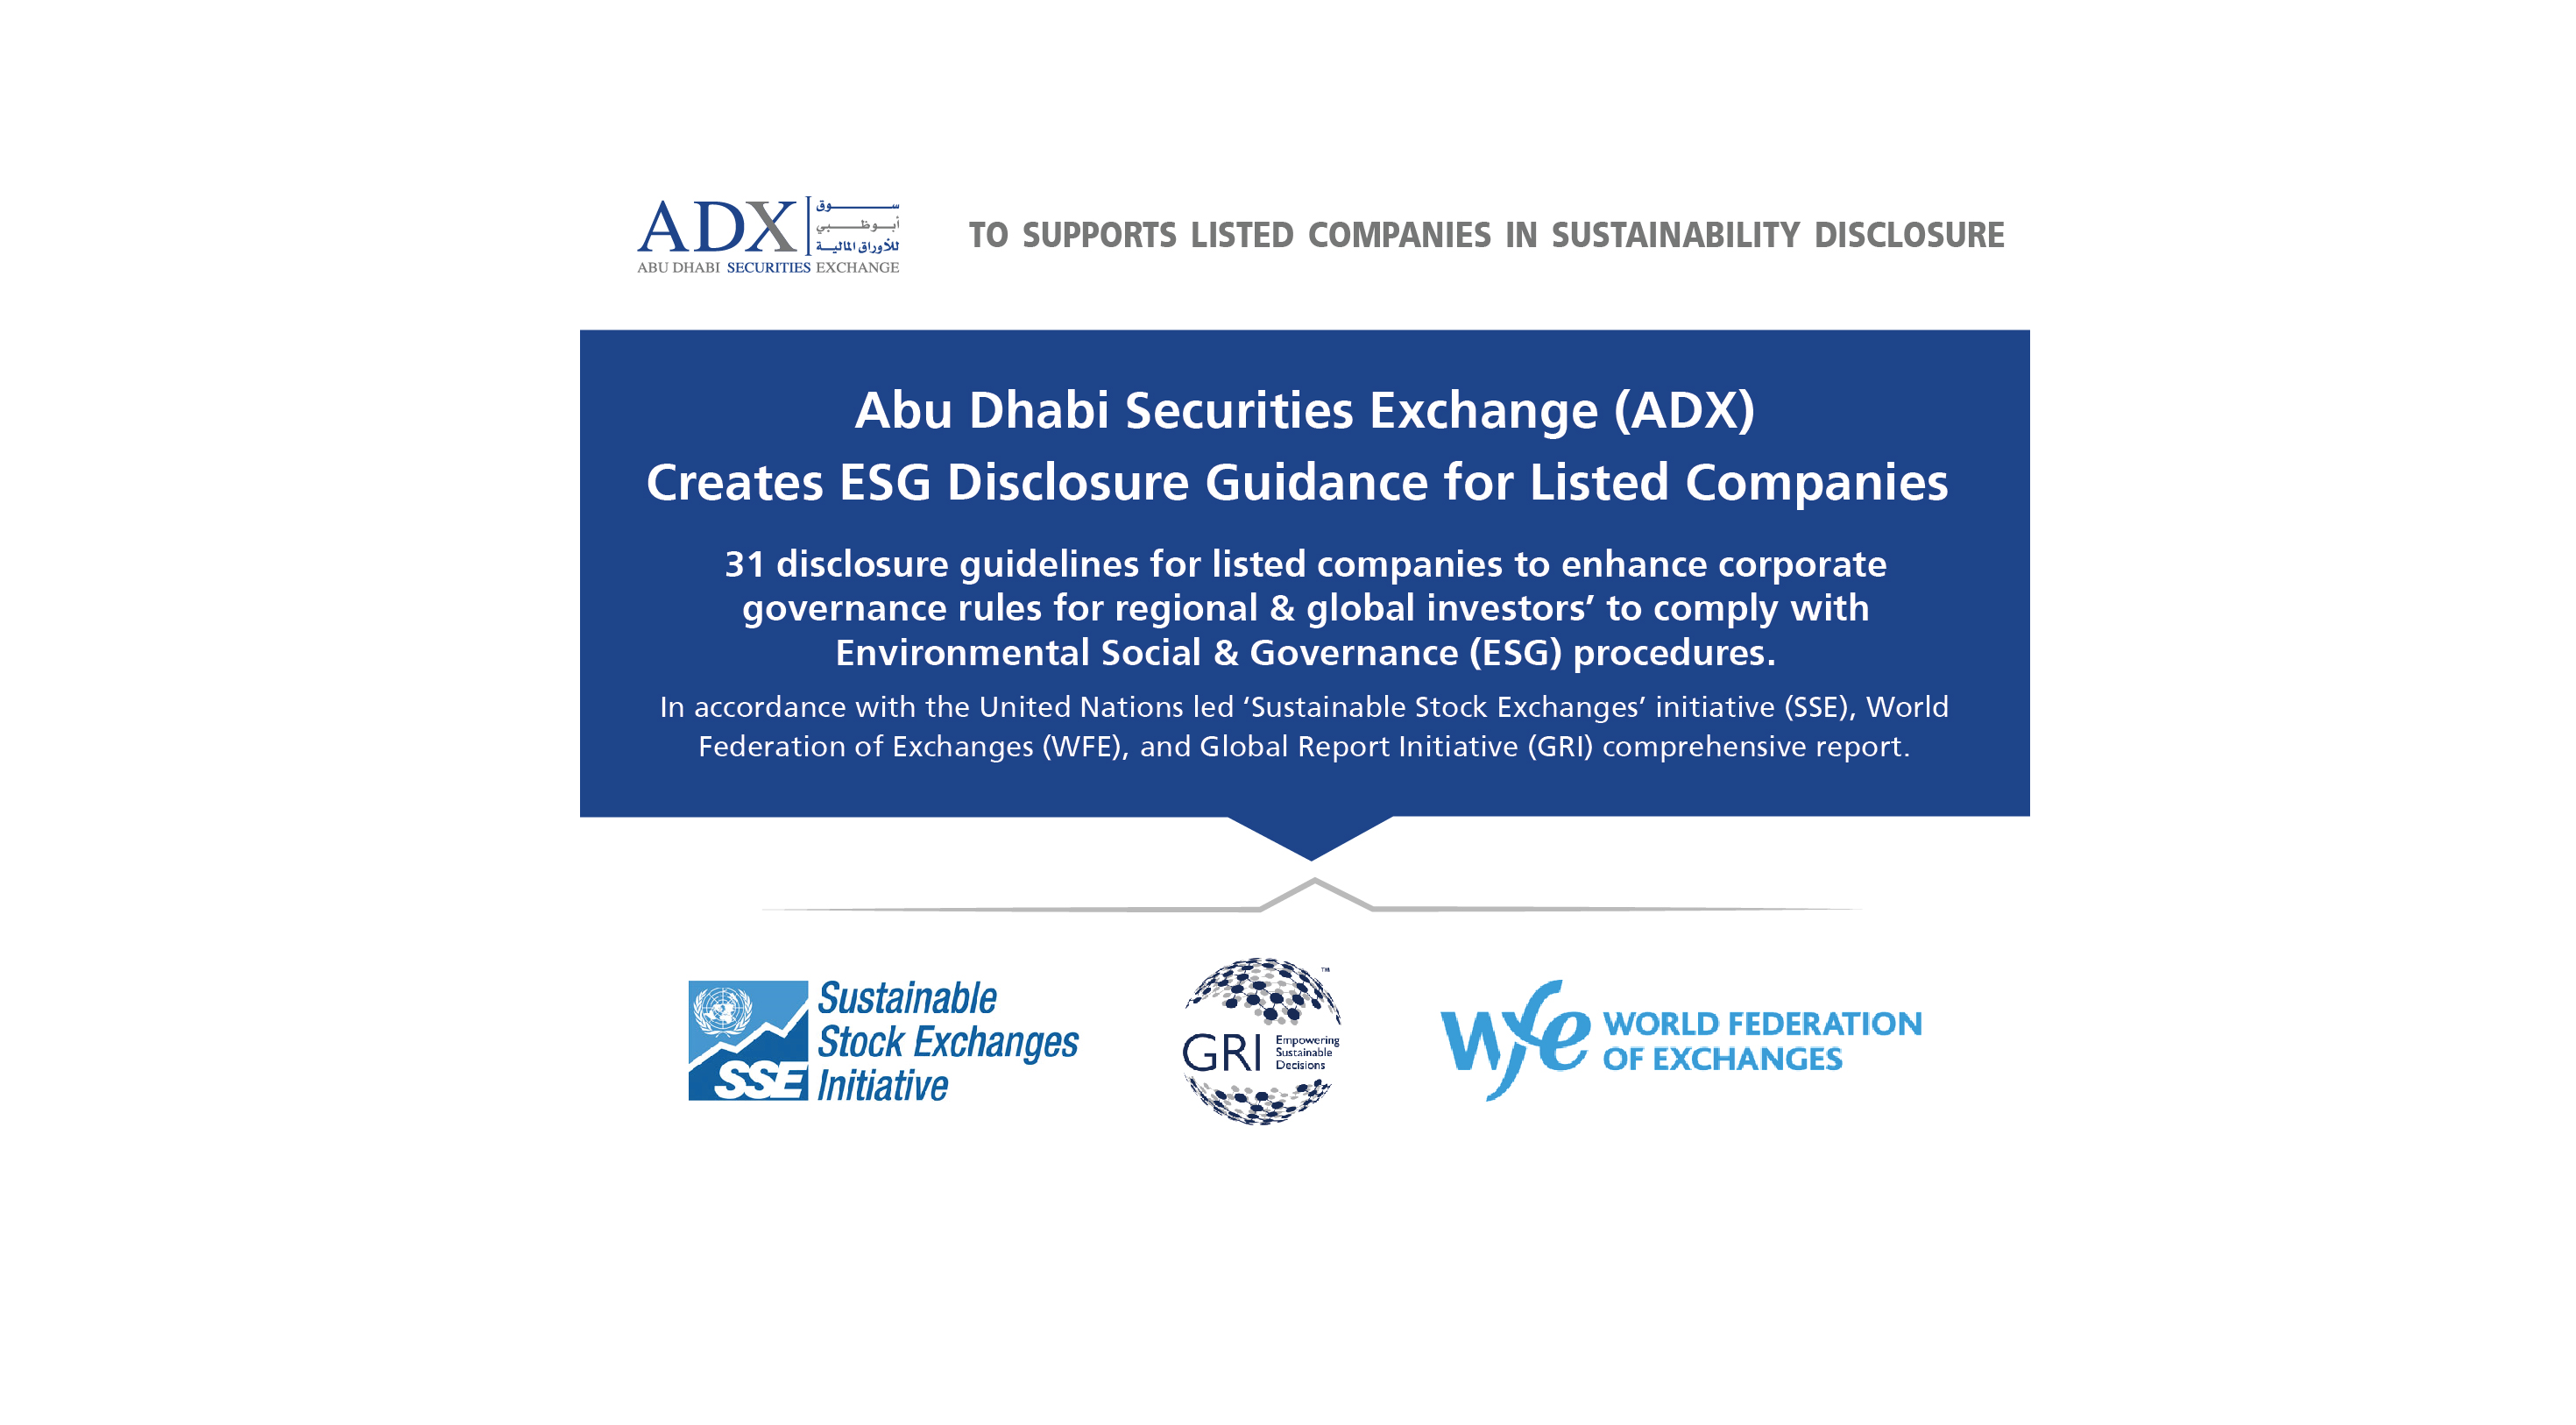 Abu Dhabi Securities Exchange creates environmental, social & governance (ESG) disclosure guidance for listed companies